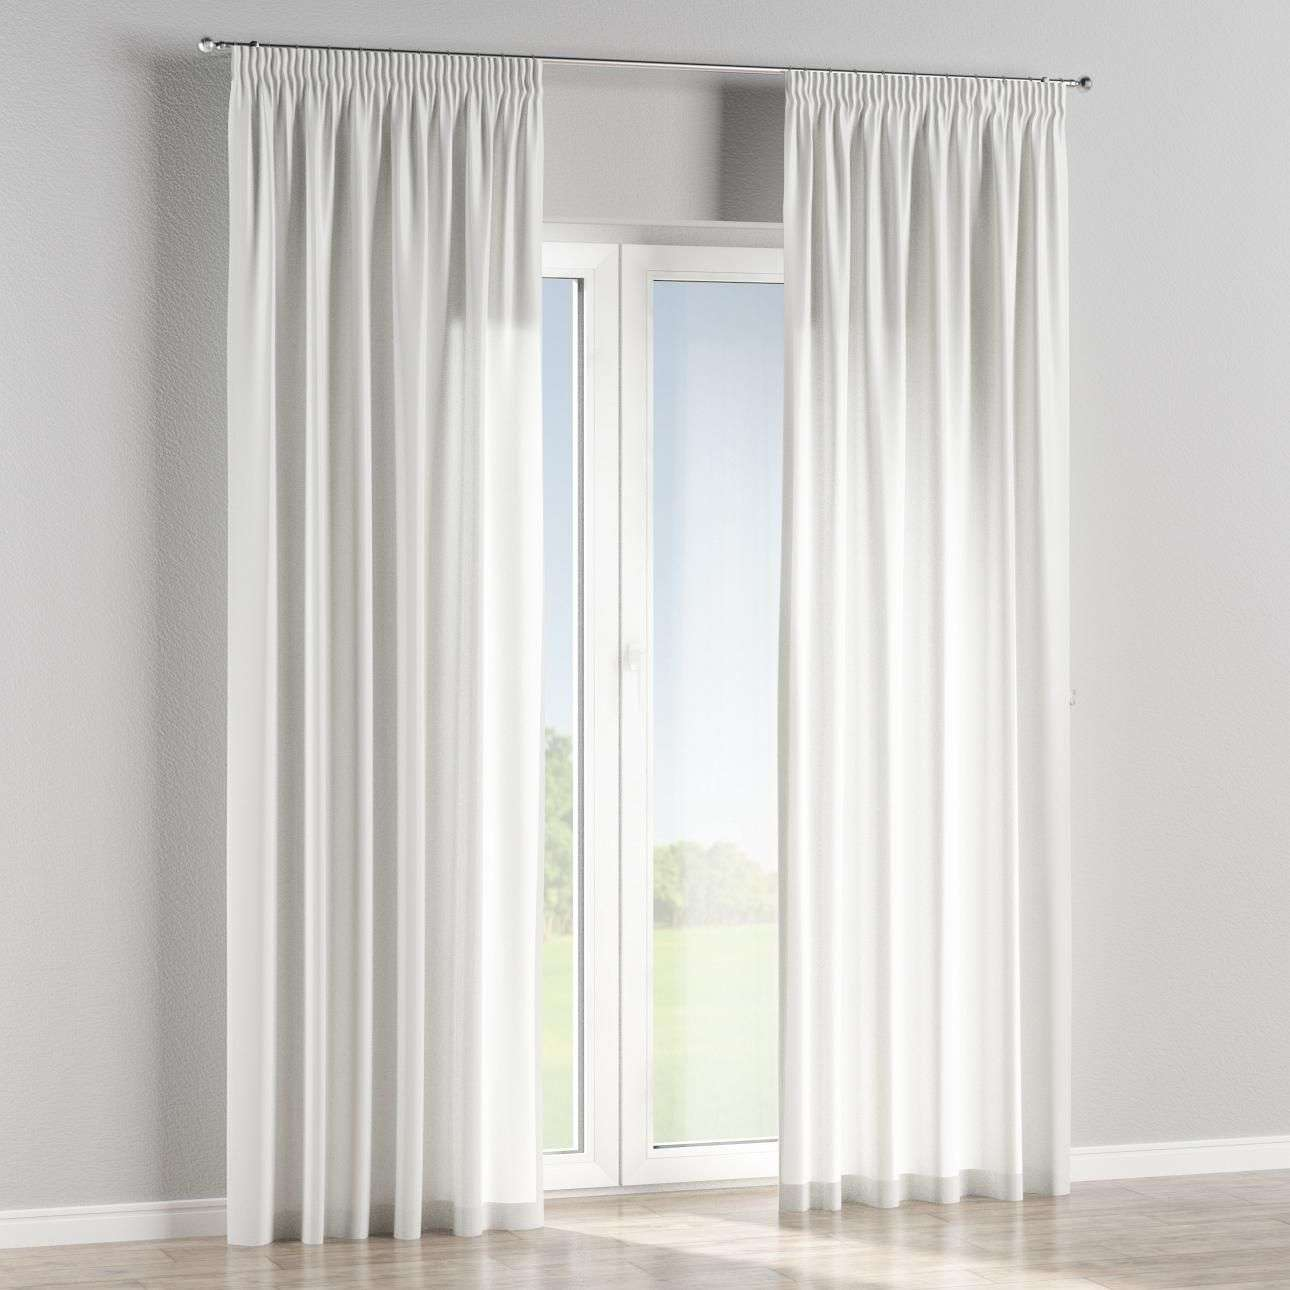 Pencil pleat curtains in collection Marina, fabric: 140-16